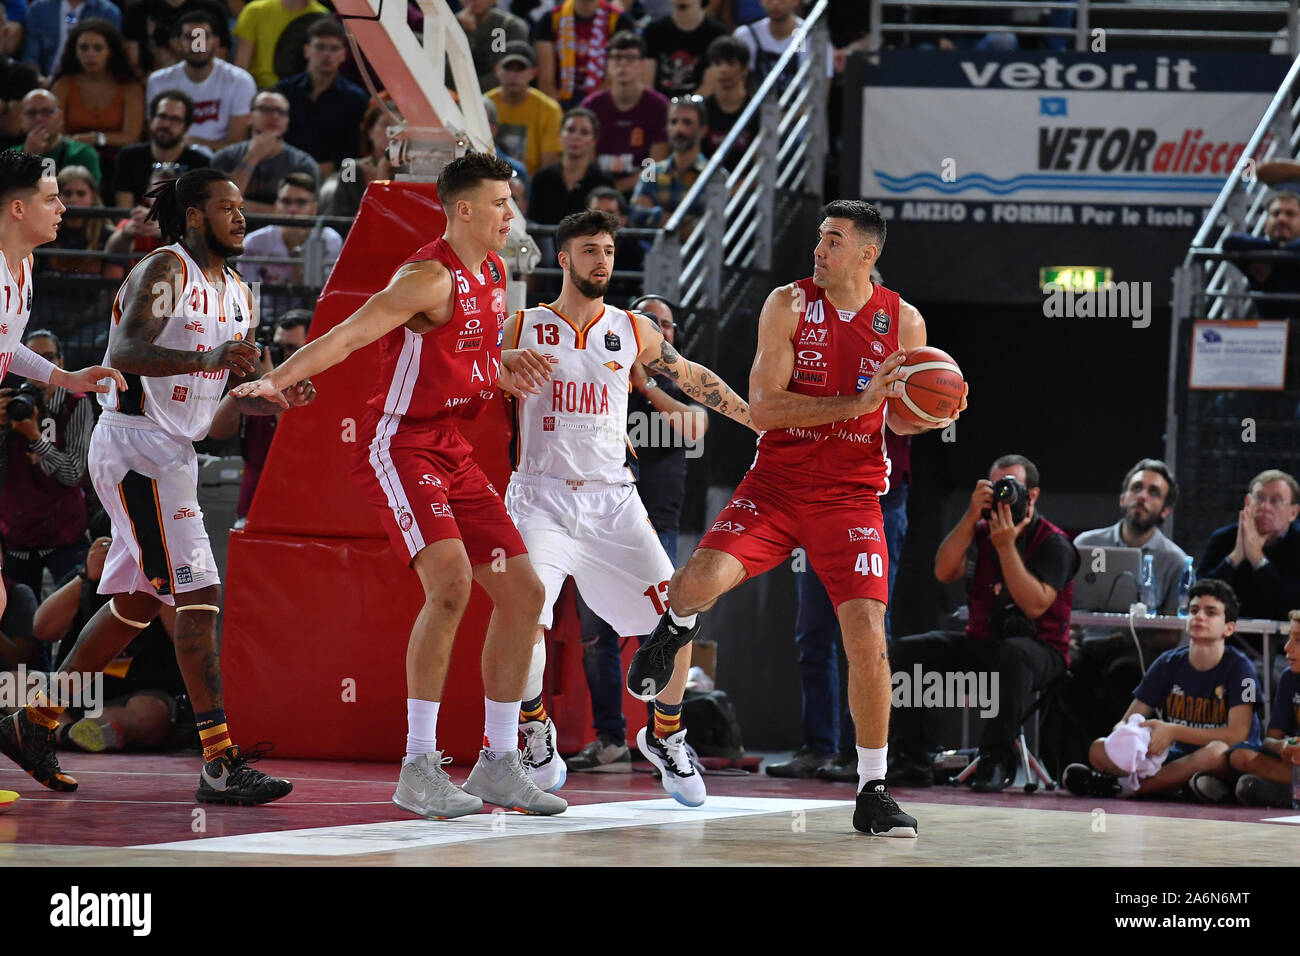 Rome, Italy. 27th Oct, 2019. It is a Virtus Roma that comes out to the top of the applause of the 7591 of the Palazzo dello Sport of the Eur, defeated only in the final by the favored Olimpia Milano for 73. Although still without Roller and with Dyson and Jefferson struggling with problems of fouls, the Virtus plays at par, fight and sometimes even amuses the wonderful public who rushed to the Eur today. (Photo by Domenico Cippitelli/Pacific Press) Credit: Pacific Press Agency/Alamy Live News Stock Photo